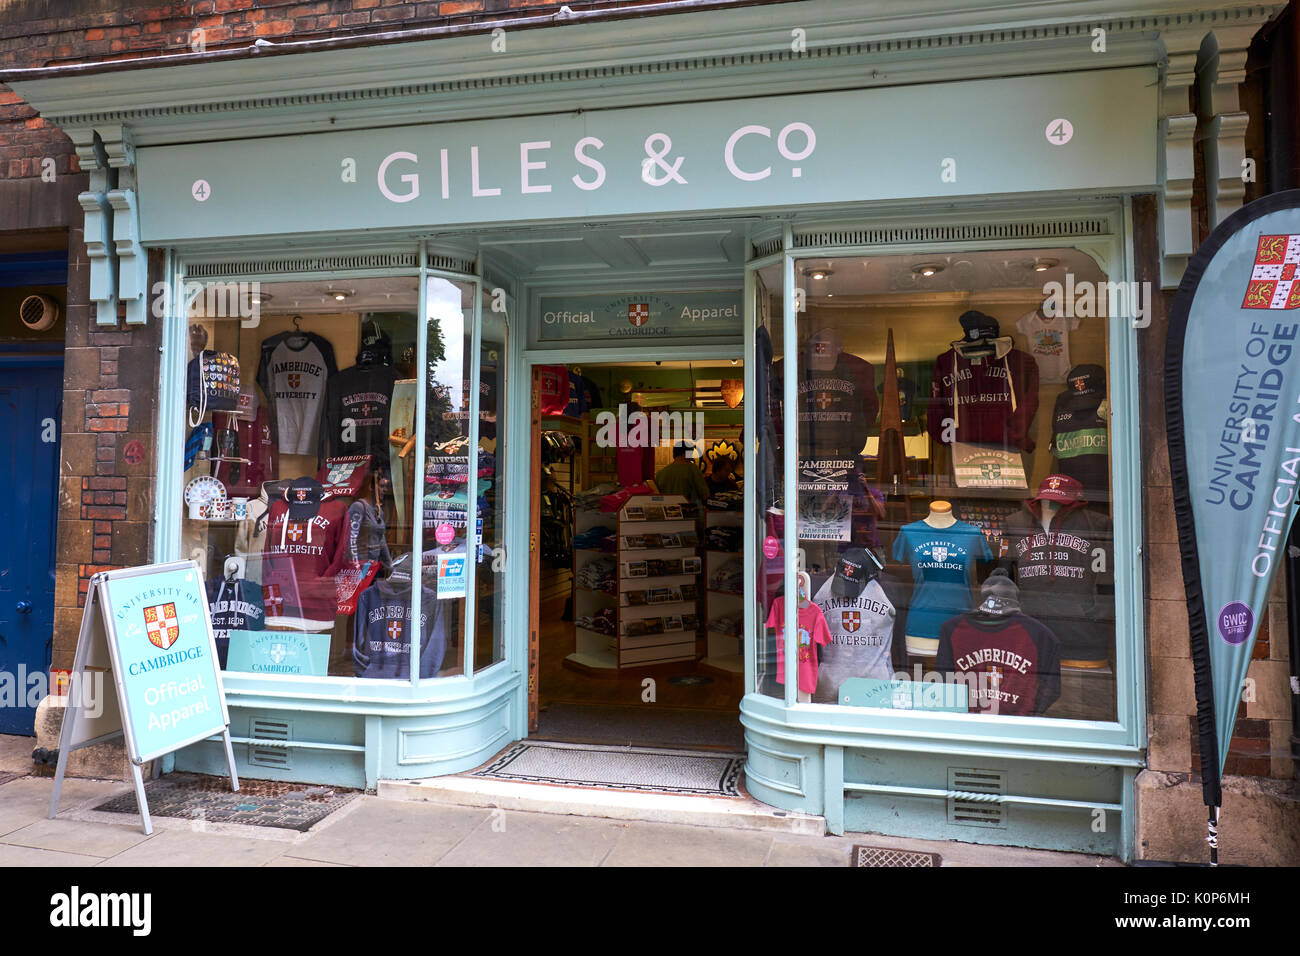 Giles And Co Official Supplier Of University Apparel And Gift Shop, Trinity Street, Cambridge, UK - Stock Image